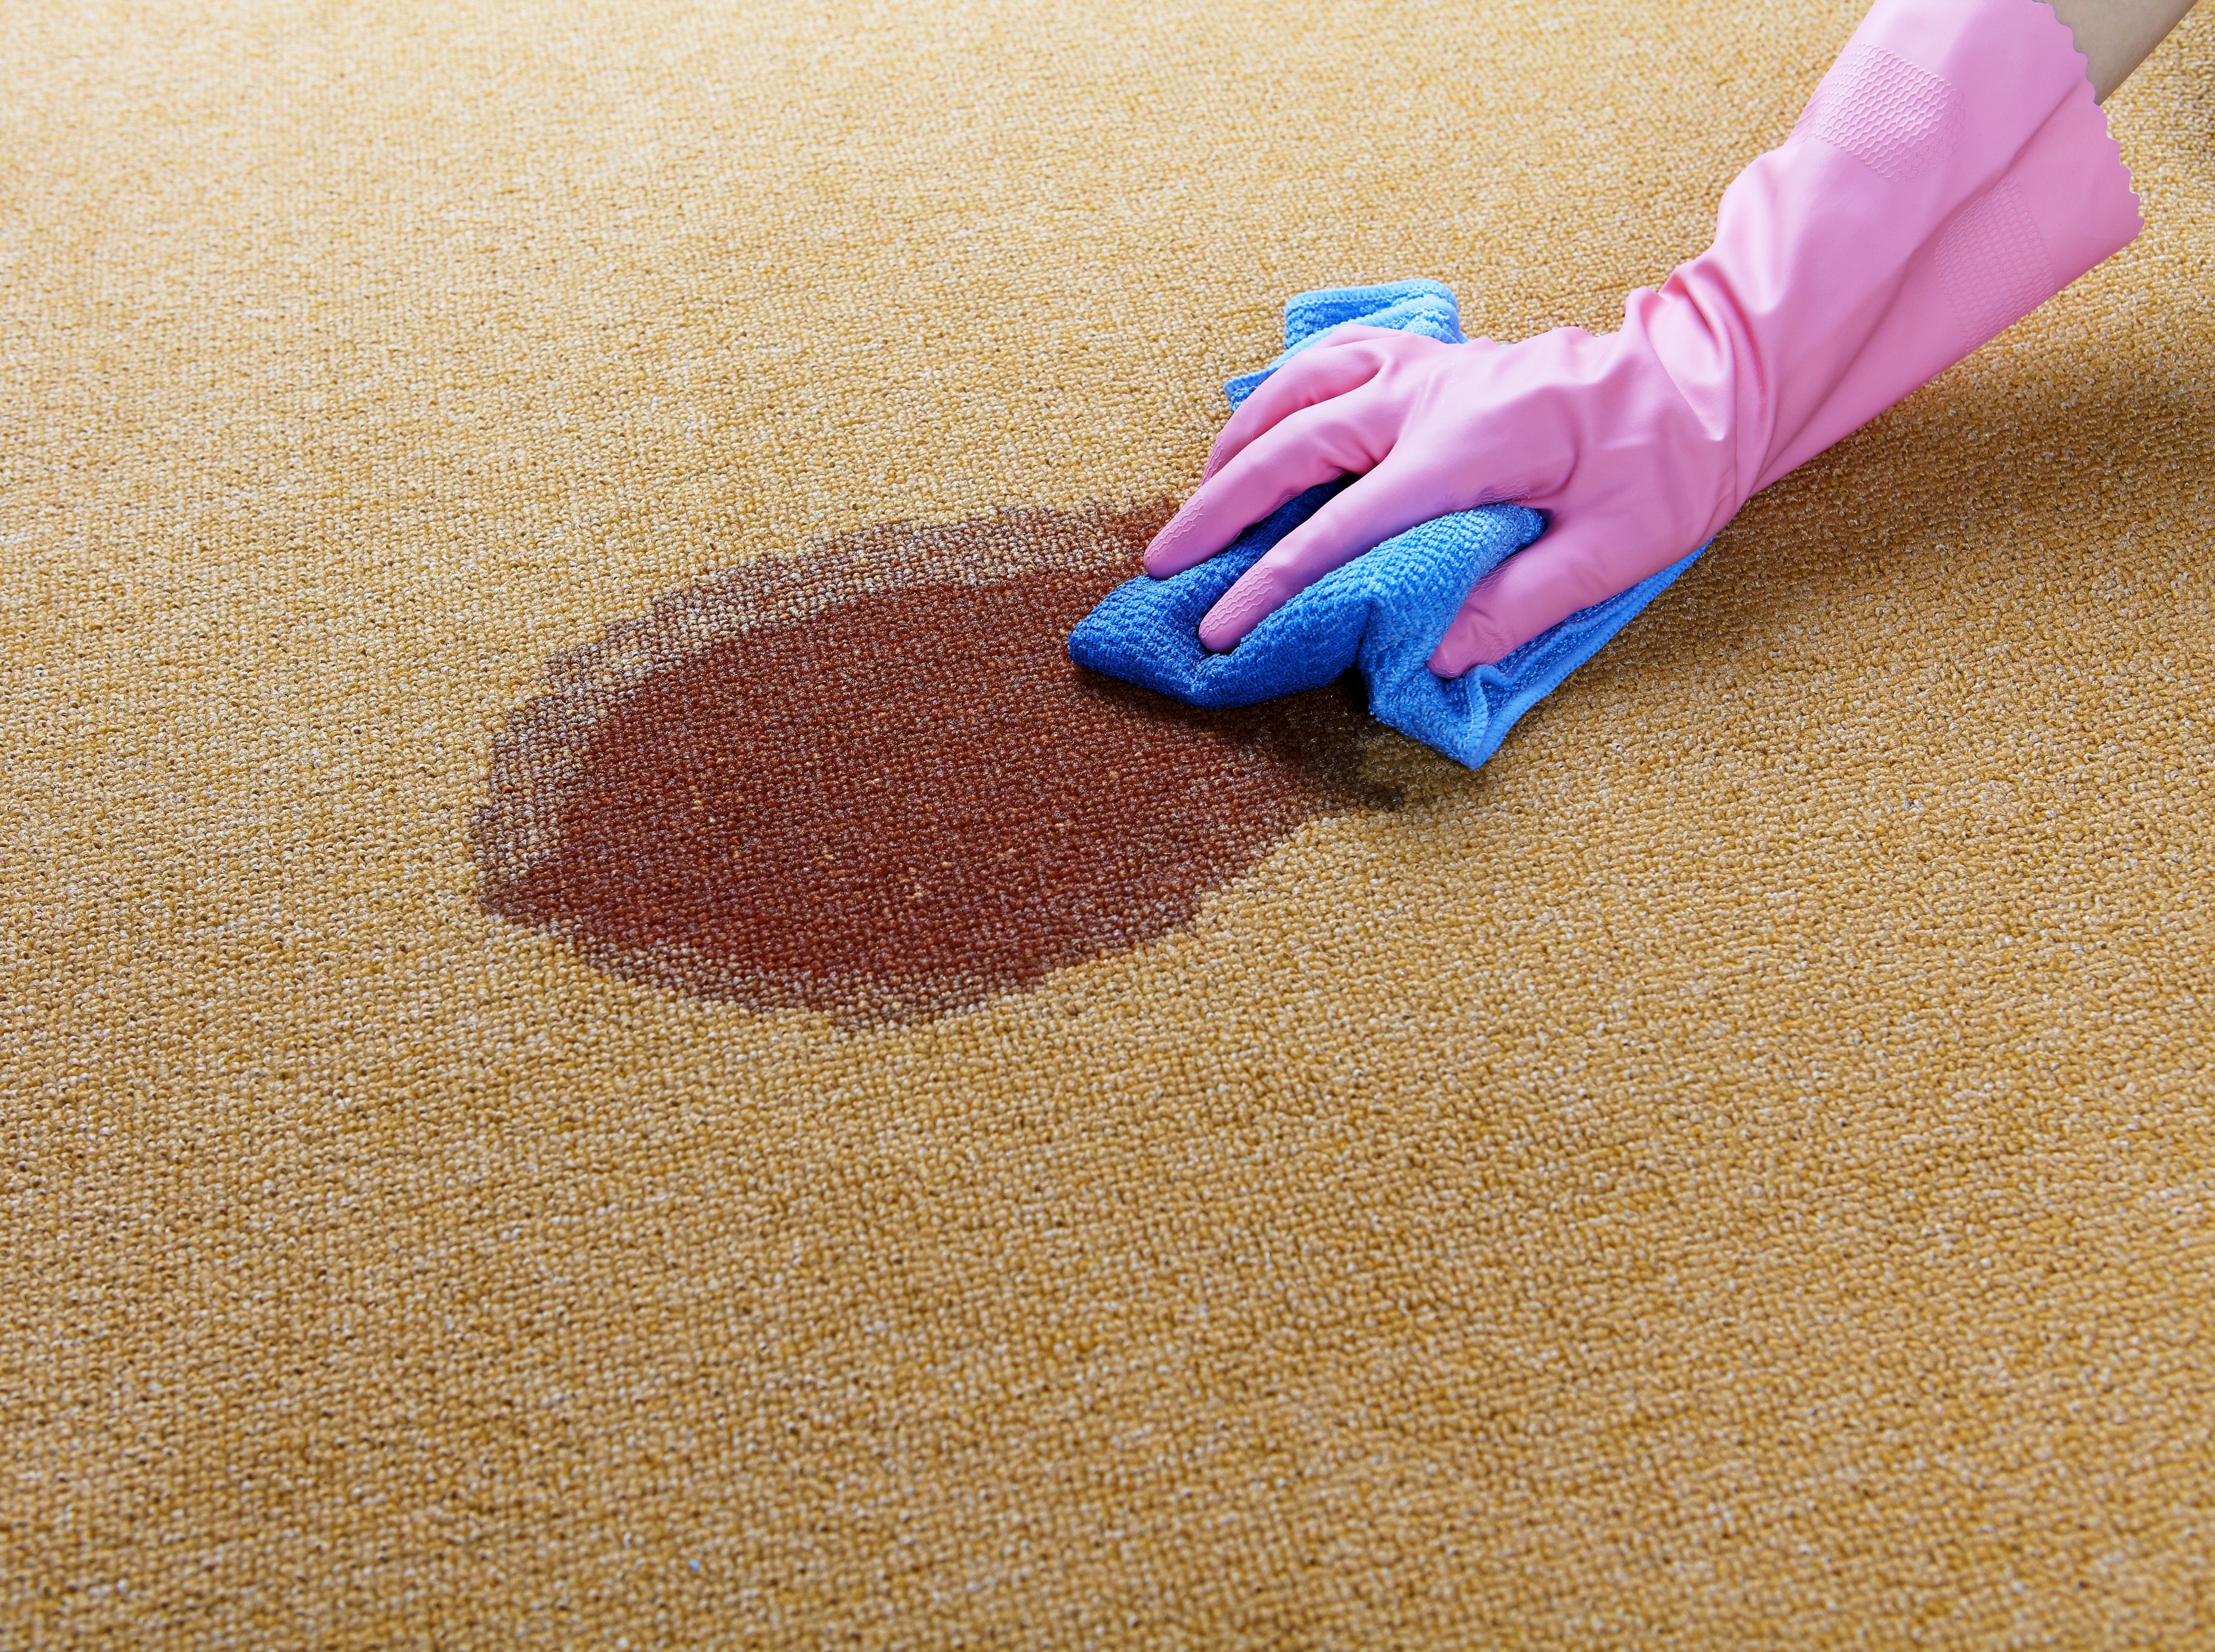 The 8 Best Carpet Stain Removers To Buy In 2019